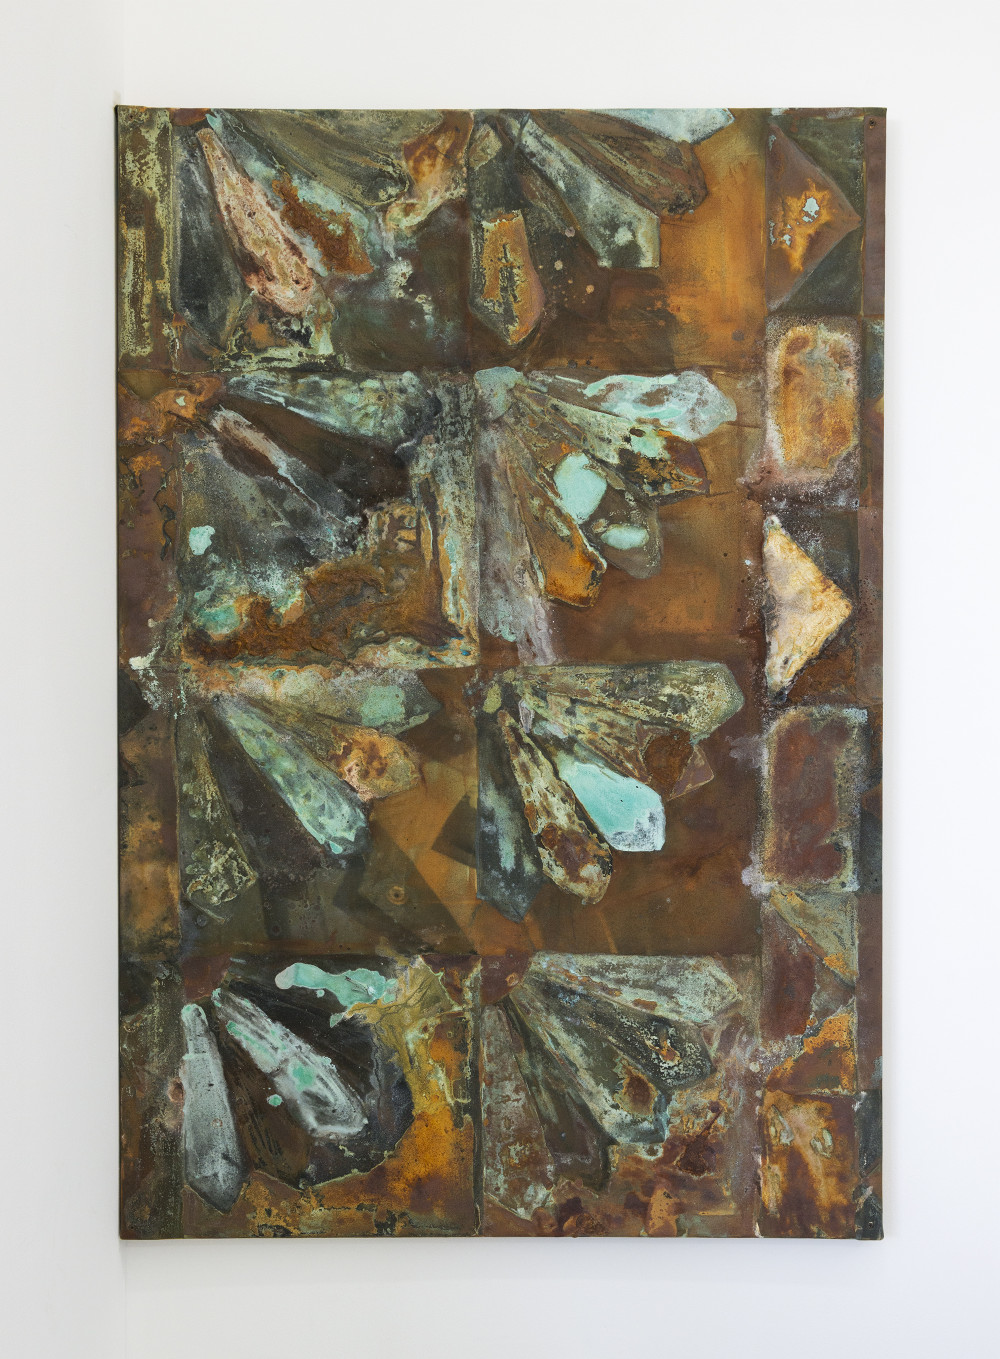 Nickolas Calabrese Tommy Ligotti, 2015 Iron, Copper, Bronze, Brass, Acrylic Polymers, Dye, Graphite and Inkjet on Canvas